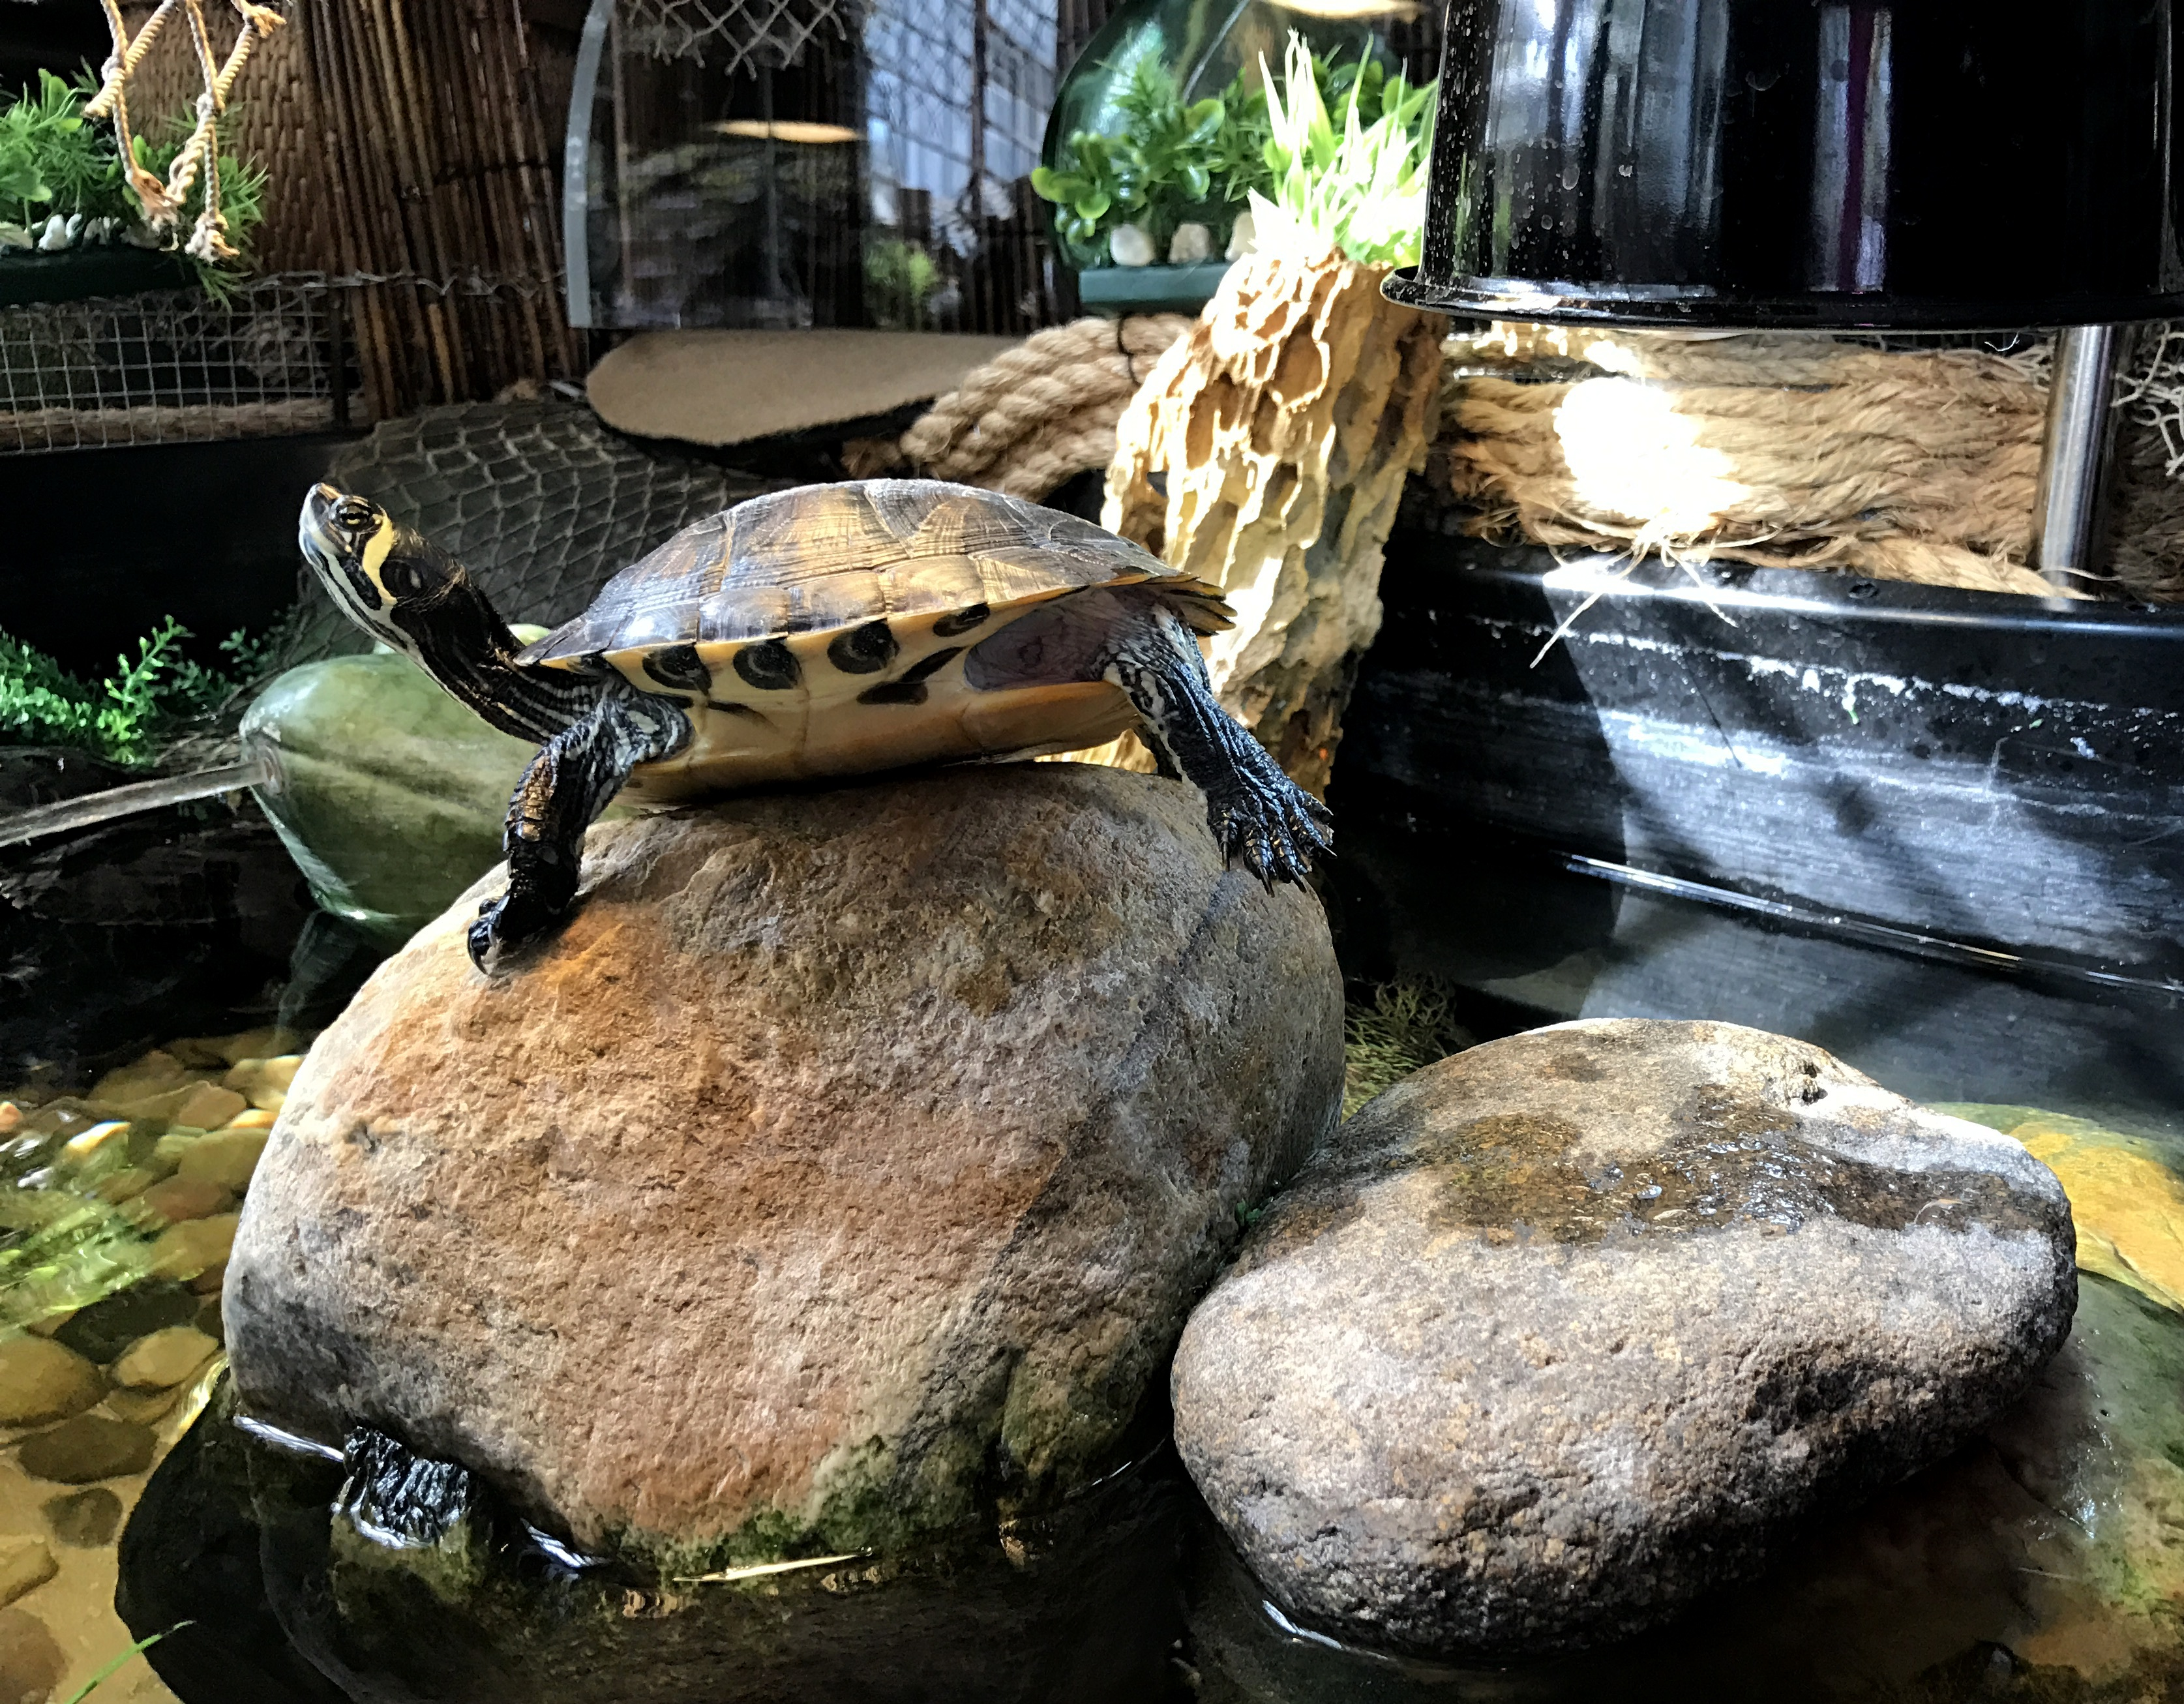 YBST ~ Yellow Bellied Slider Turtles–Quarterly Update [Slideshow], 10/22